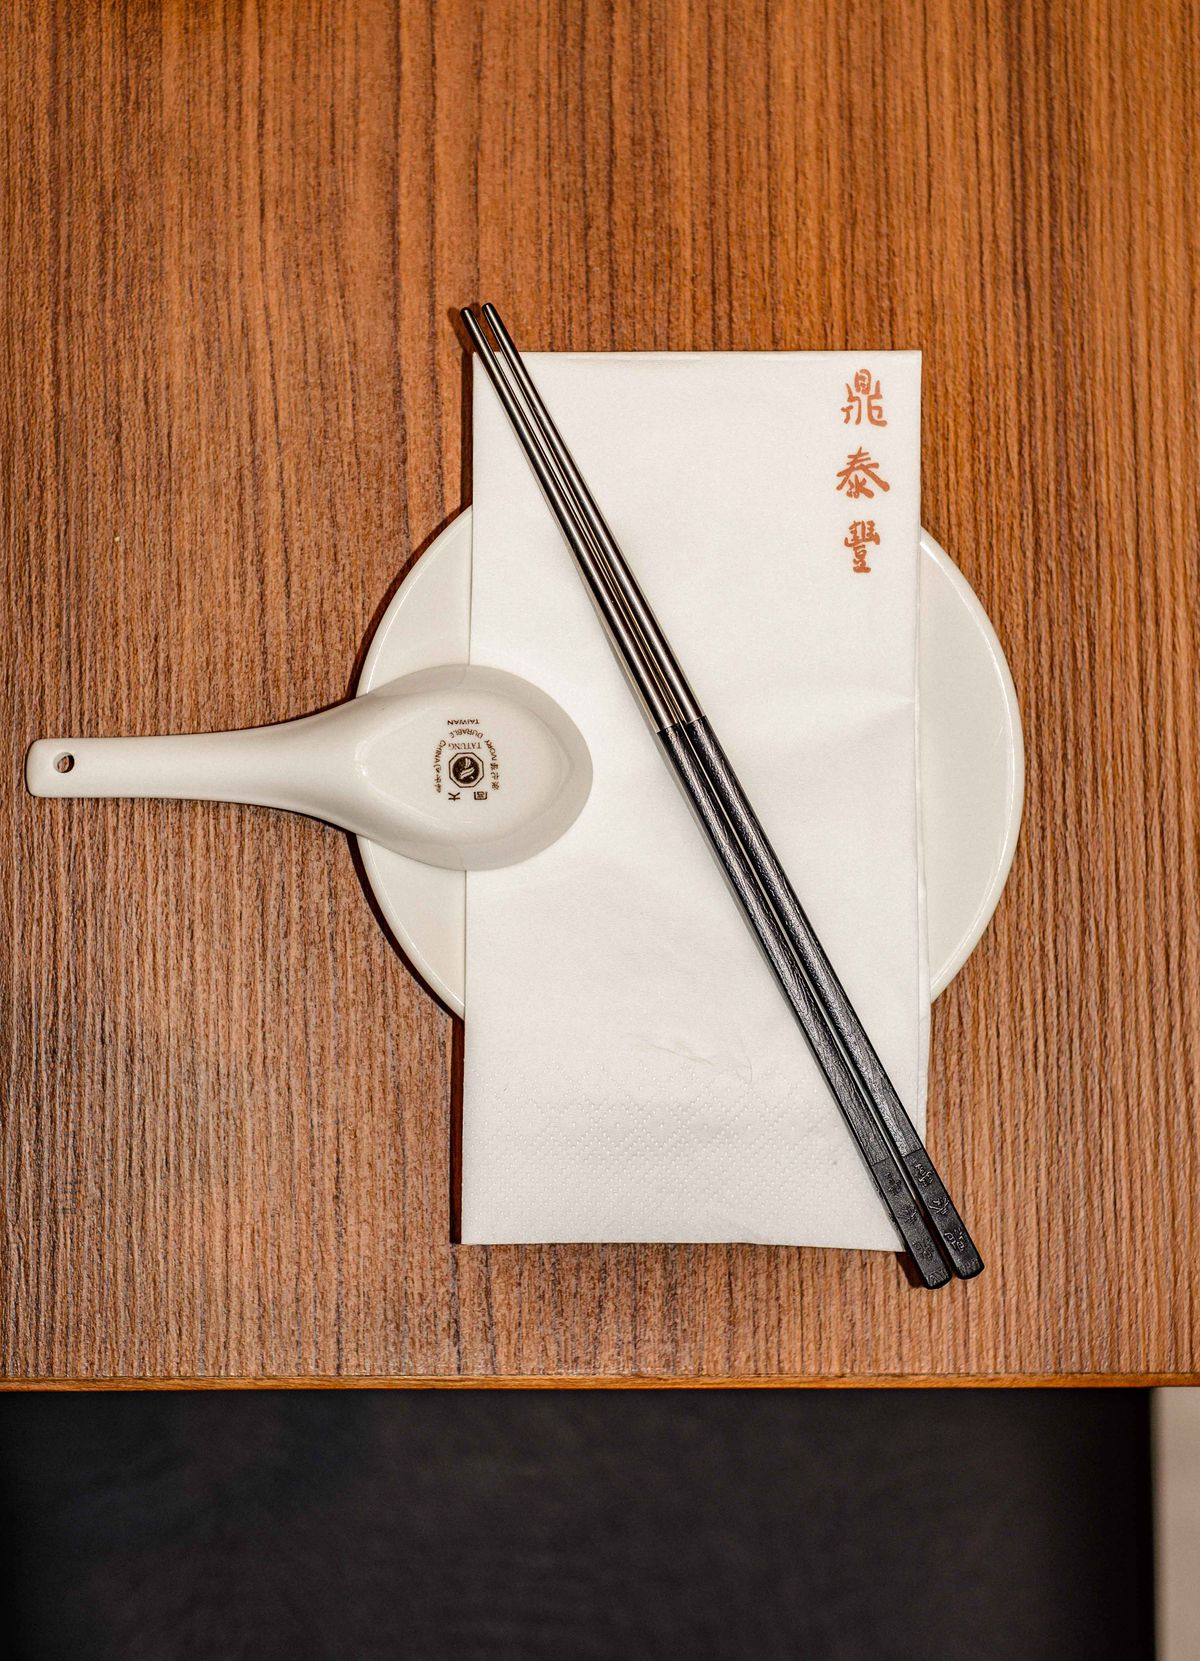 Chopsticks, soup spoon and napkin for xiaolongbao dumplings at Din Tai Fung's new London restaurant in Covent Garden